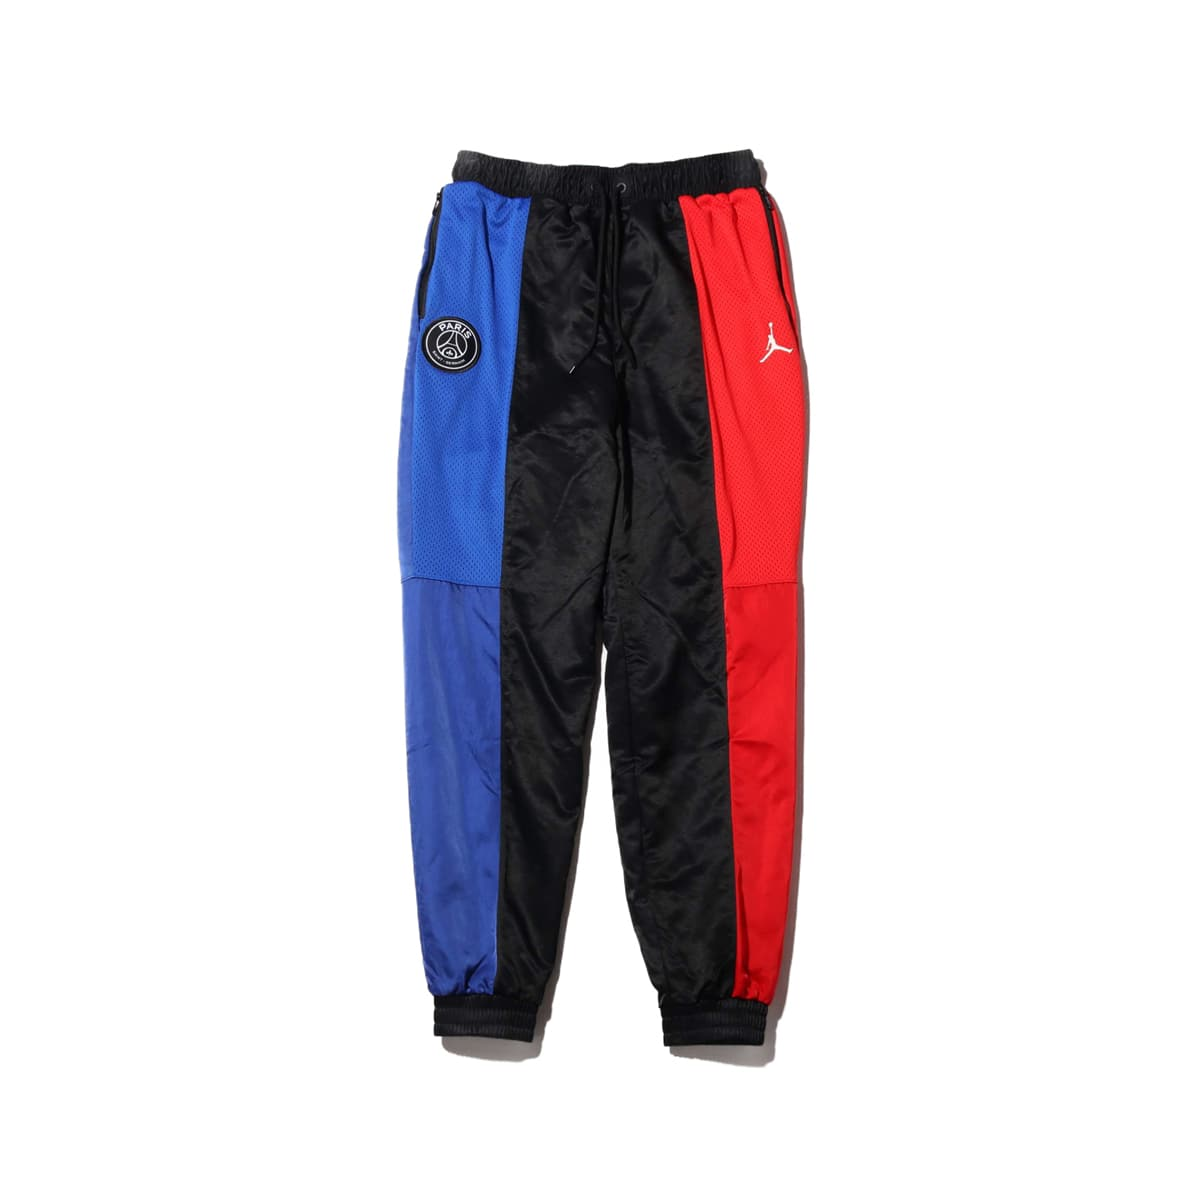 JORDAN BRAND AS M J PSG AIR JRDN SUIT PANT BLACK/GAME ROYAL/UNIVERSITY RED 20SP-S_photo_large